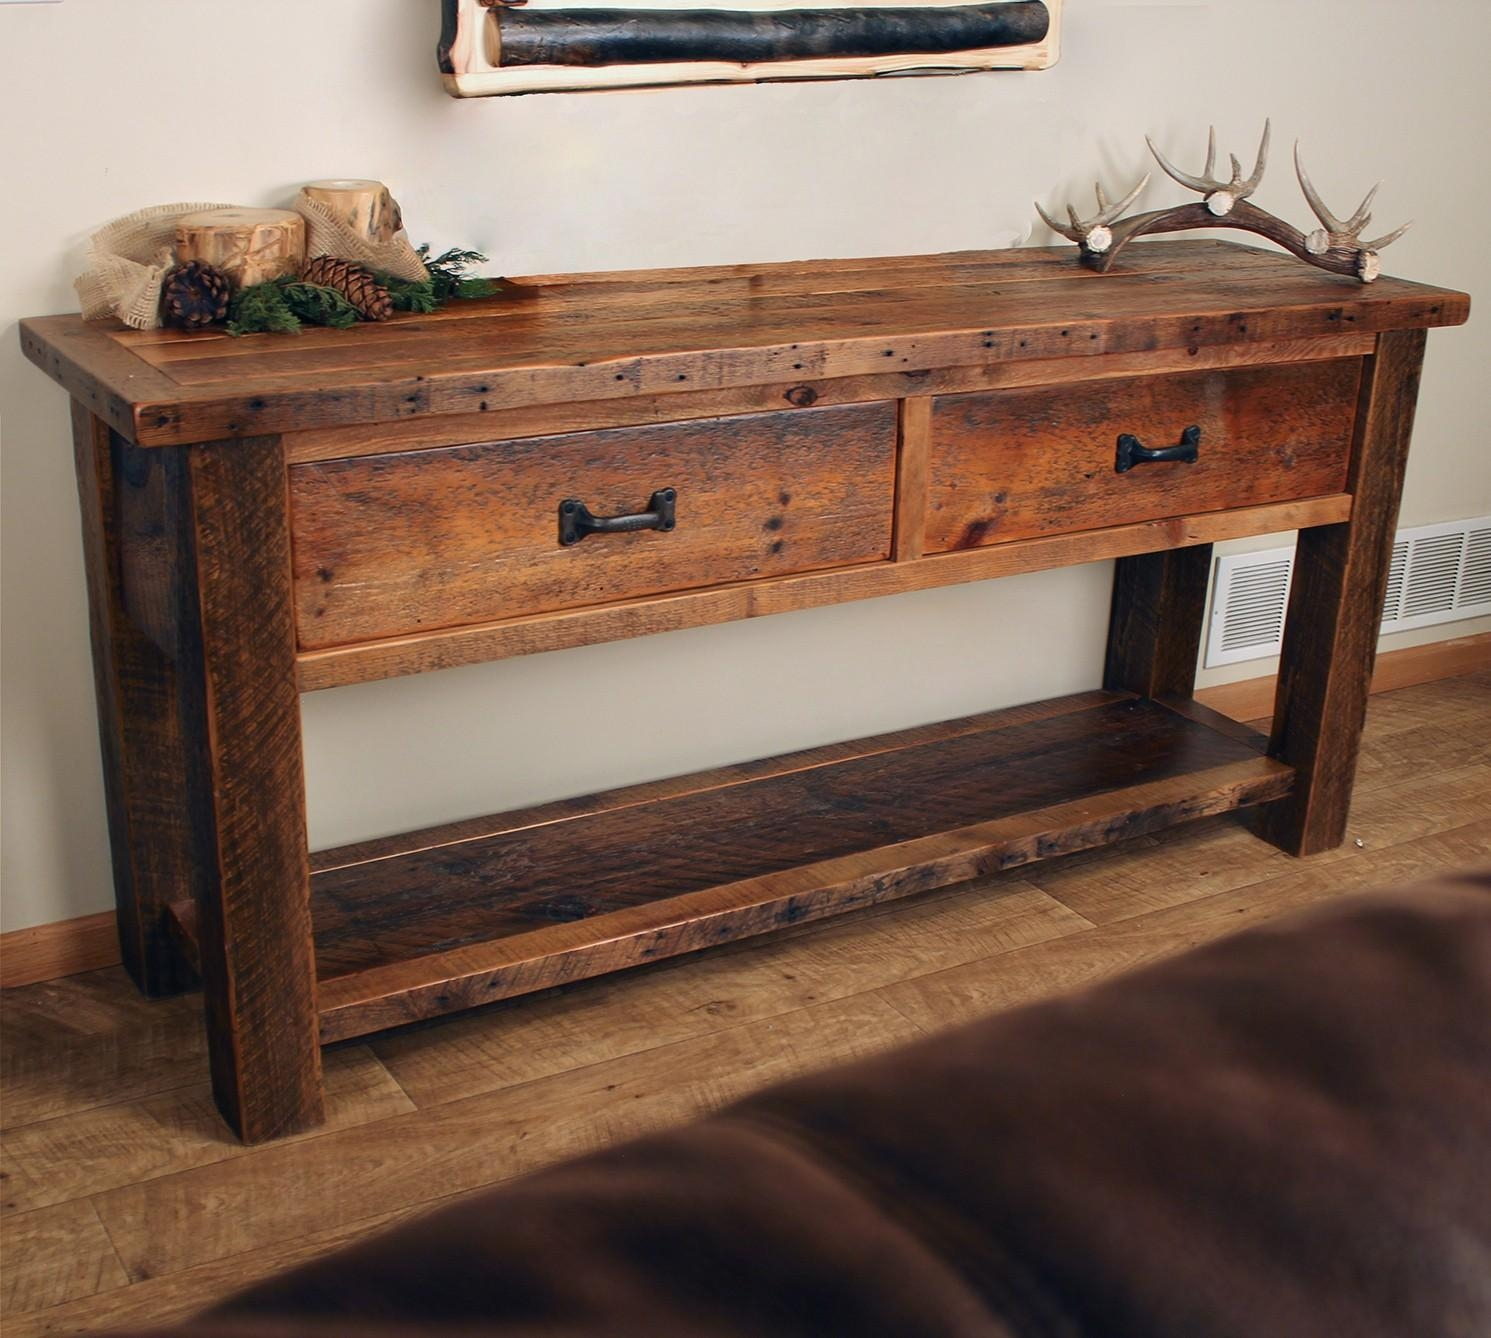 Rustic Console Tables, Entry Tables, And Sofa Tables With Regard To Sofa Table Drawers (Image 12 of 20)